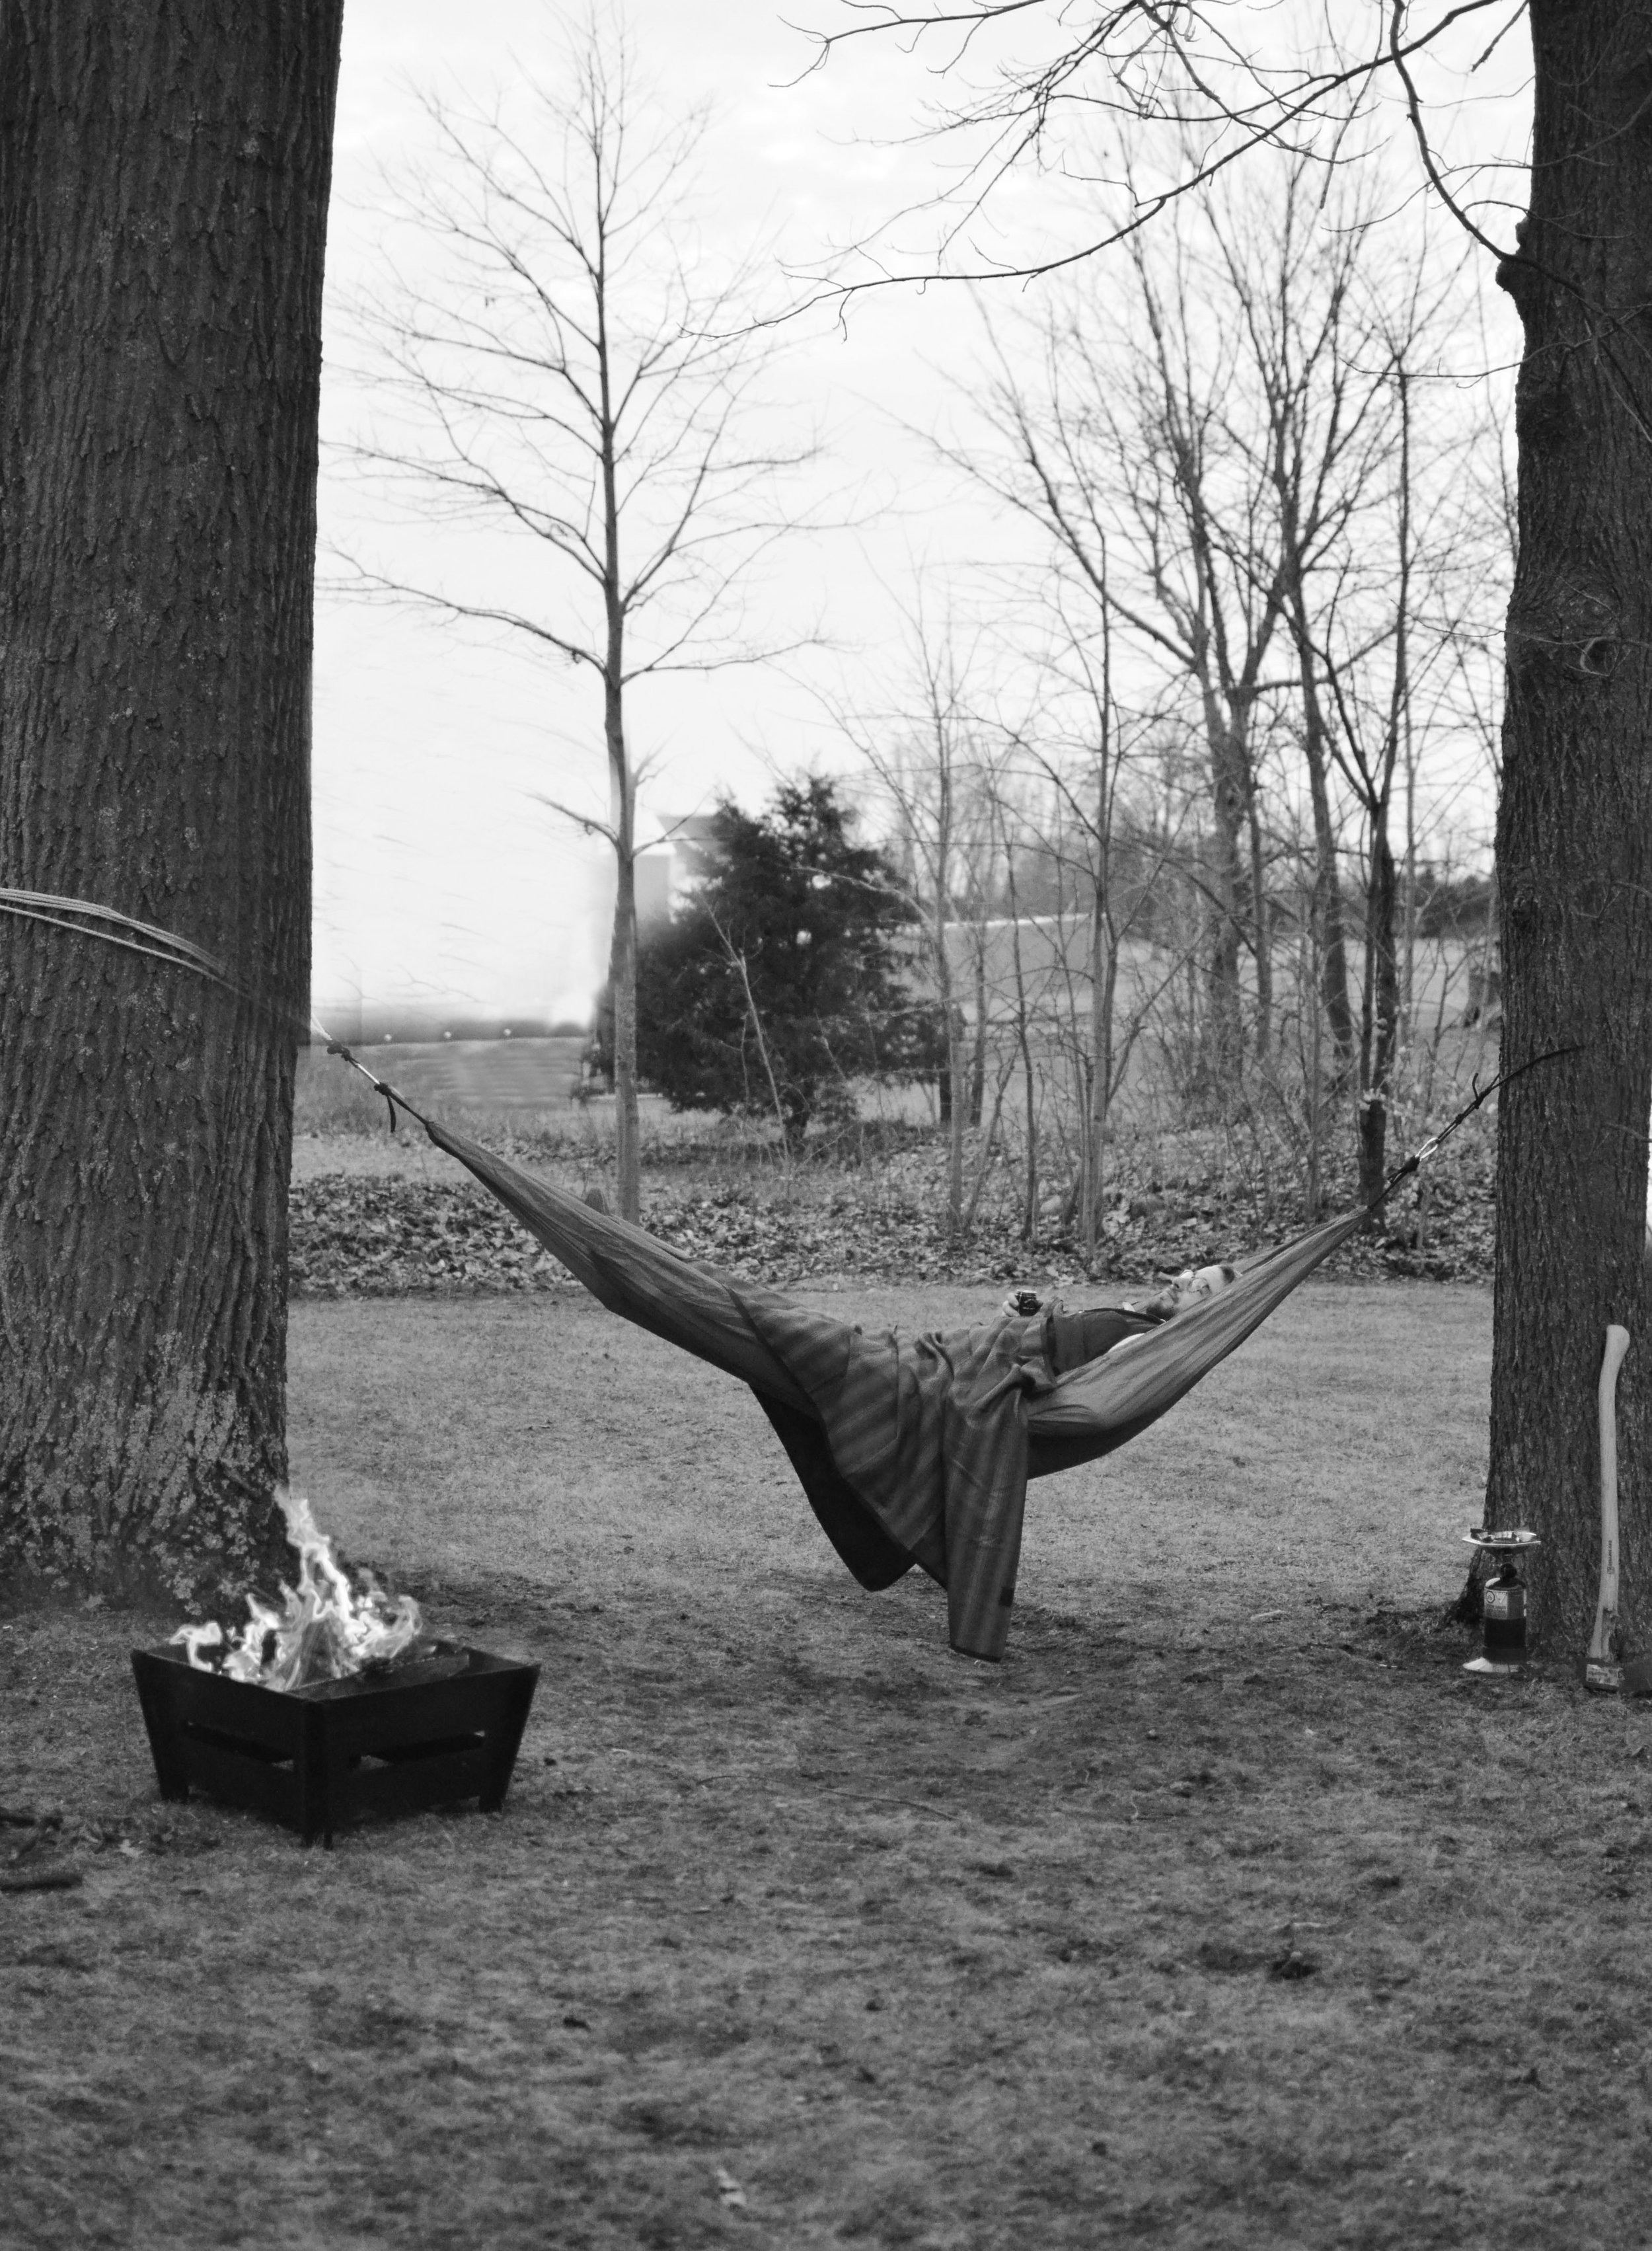 Spring_Is_Here_Bespoke_Post_Coaltree_Hammock_Camping-5.jpg